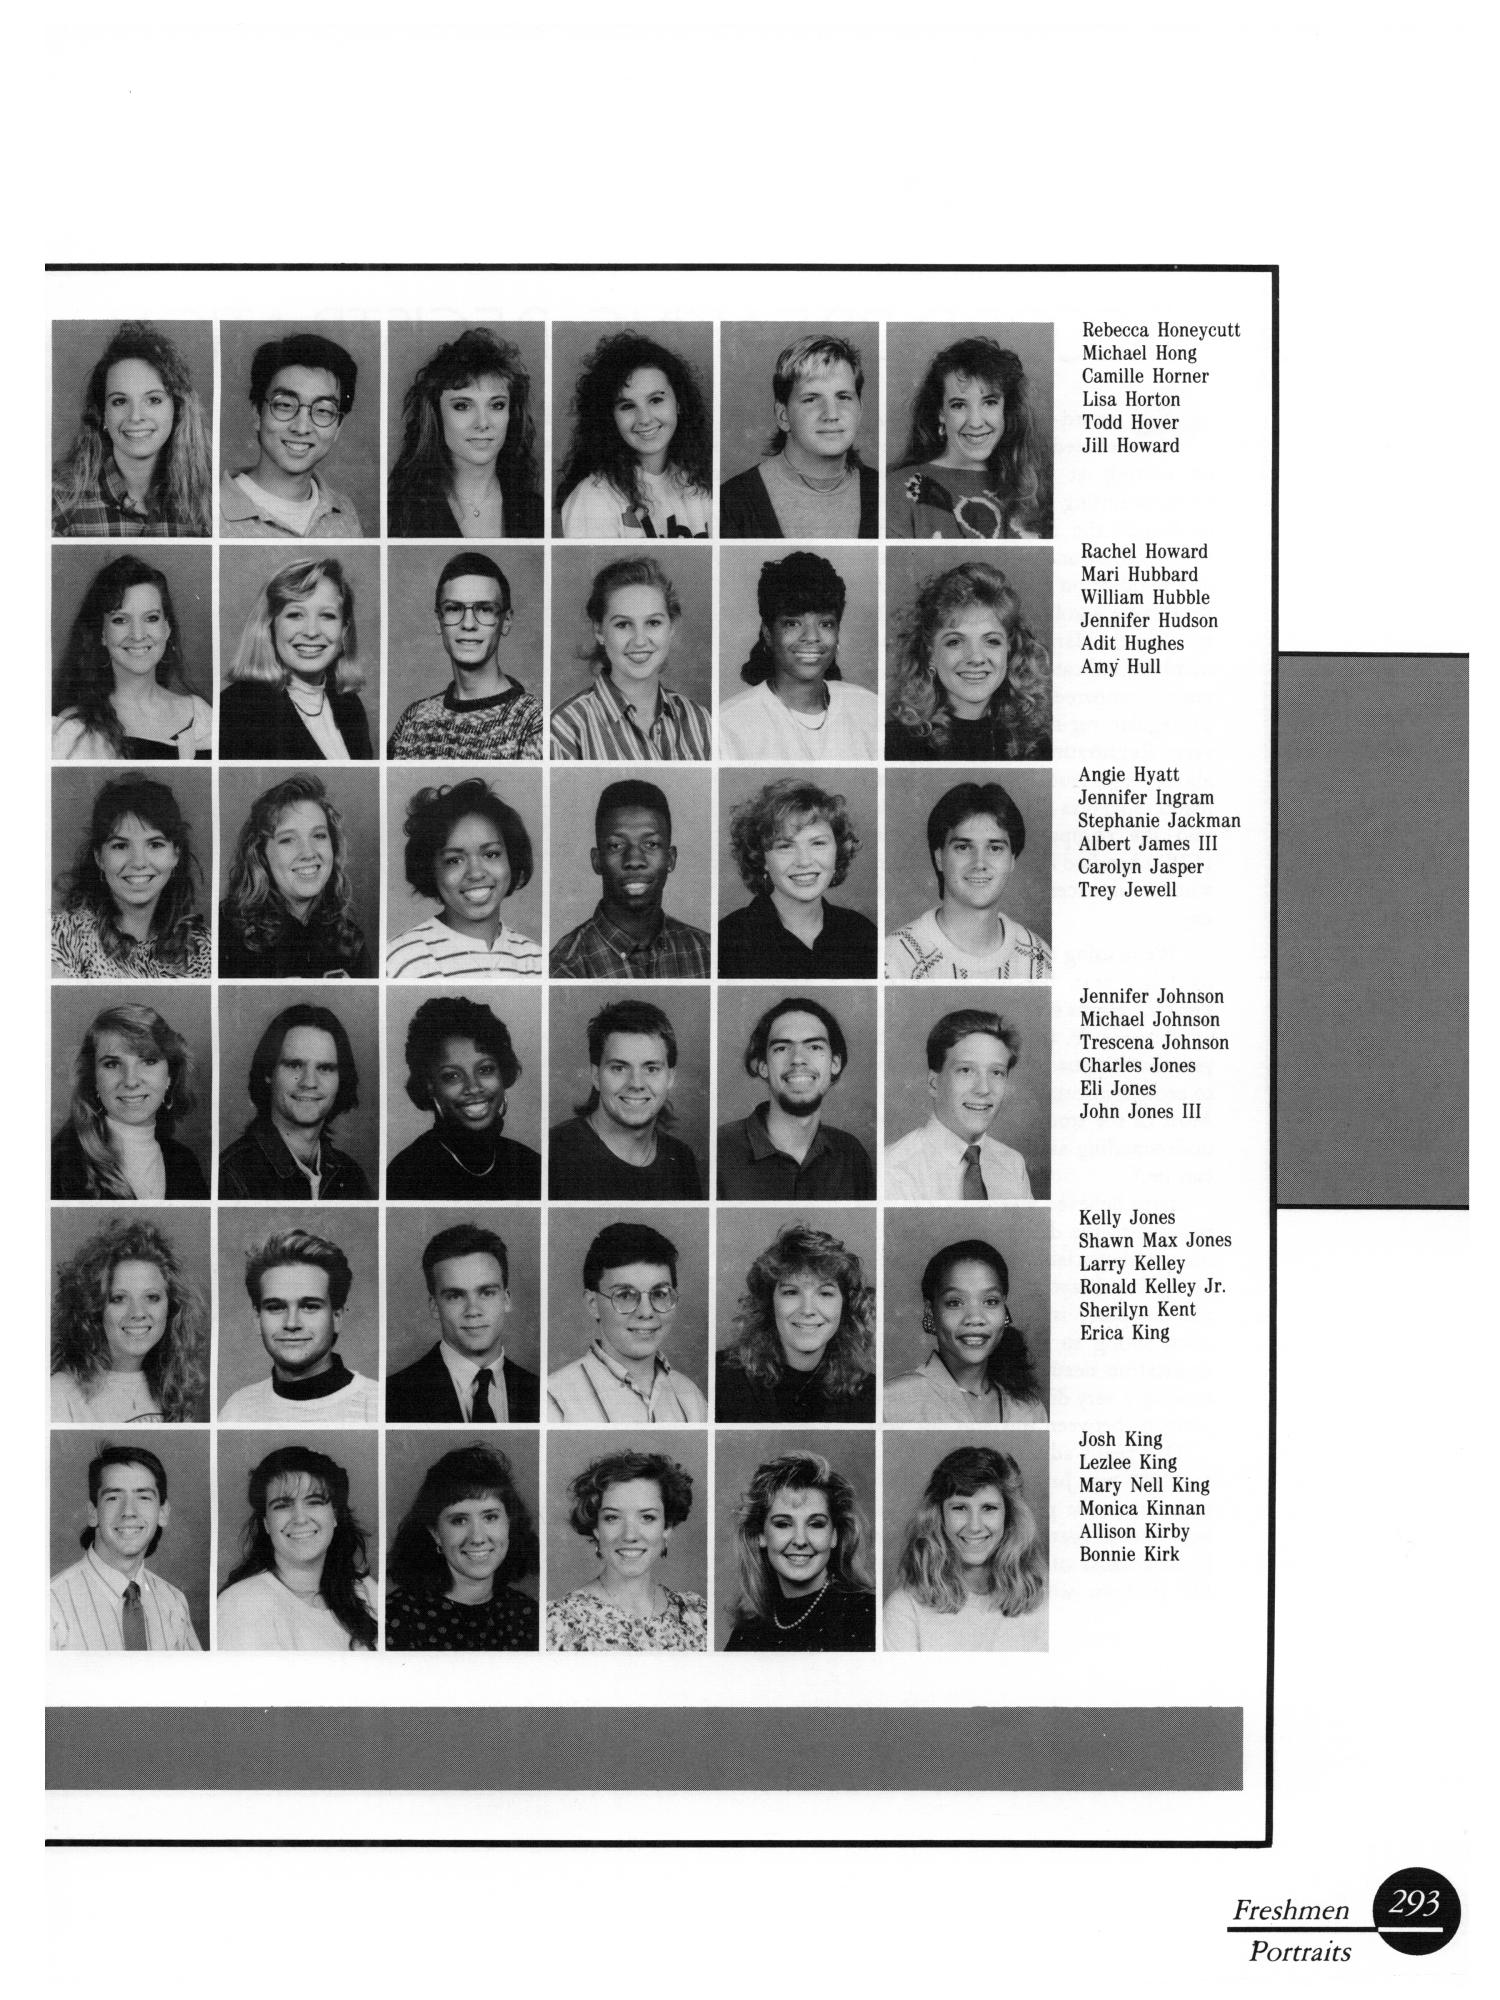 The Aerie, Yearbook of University of North Texas, 1990                                                                                                      293